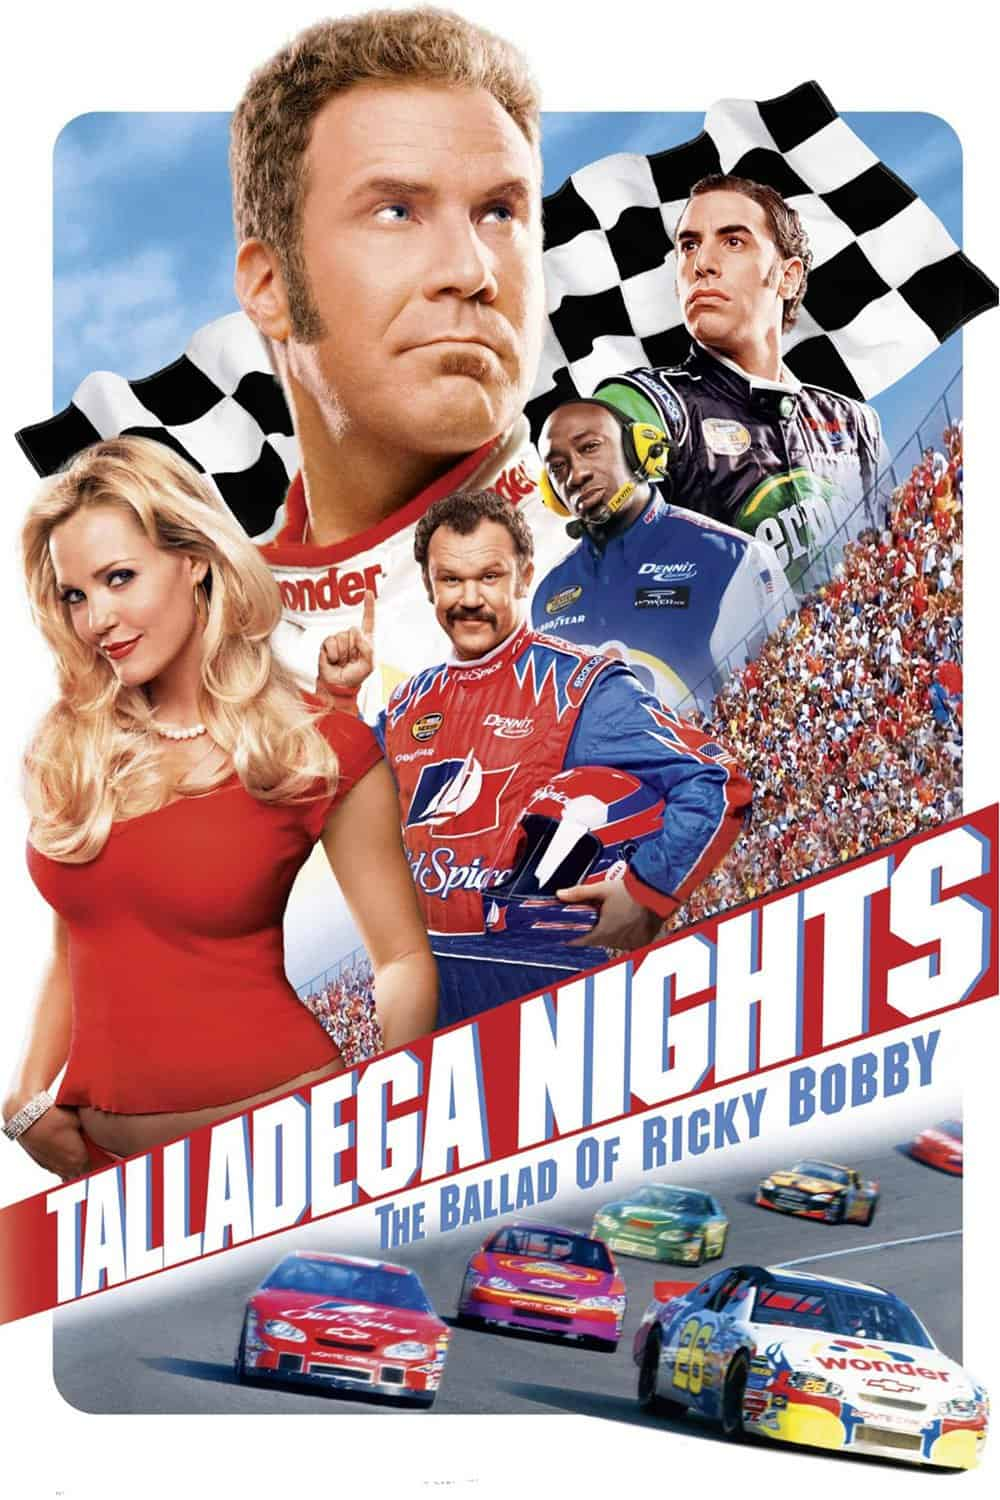 Talladega Nights: The Ballad of Ricky Bobby, 2006